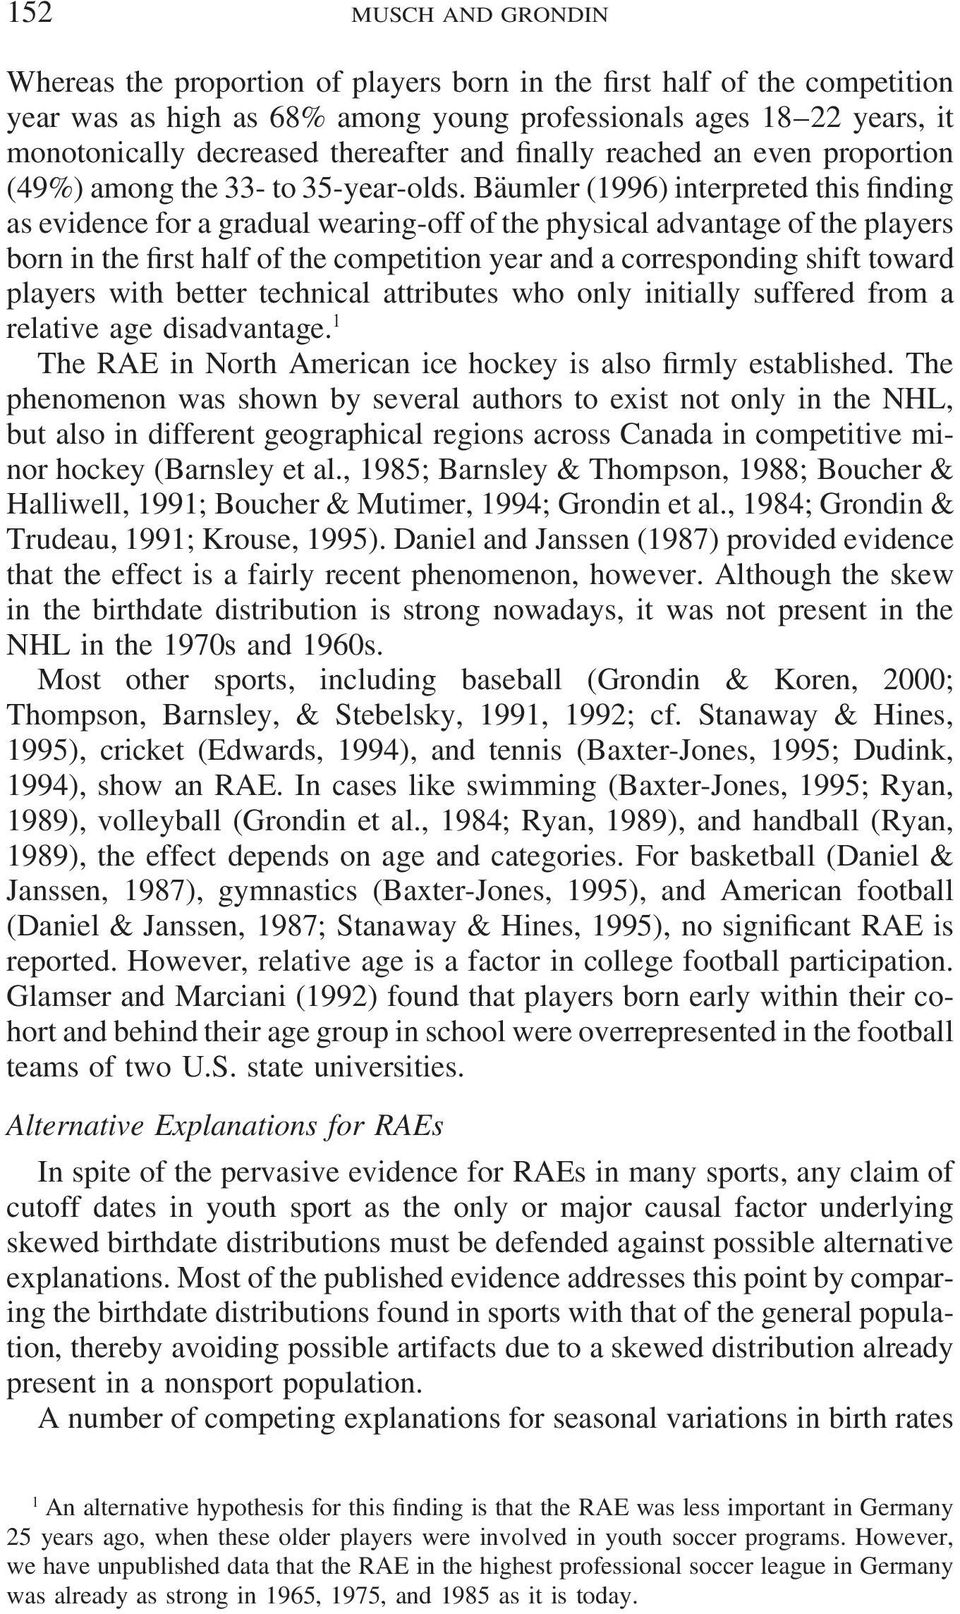 Bäumler (1996) interpreted this finding as evidence for a gradual wearing-off of the physical advantage of the players born in the first half of the competition year and a corresponding shift toward